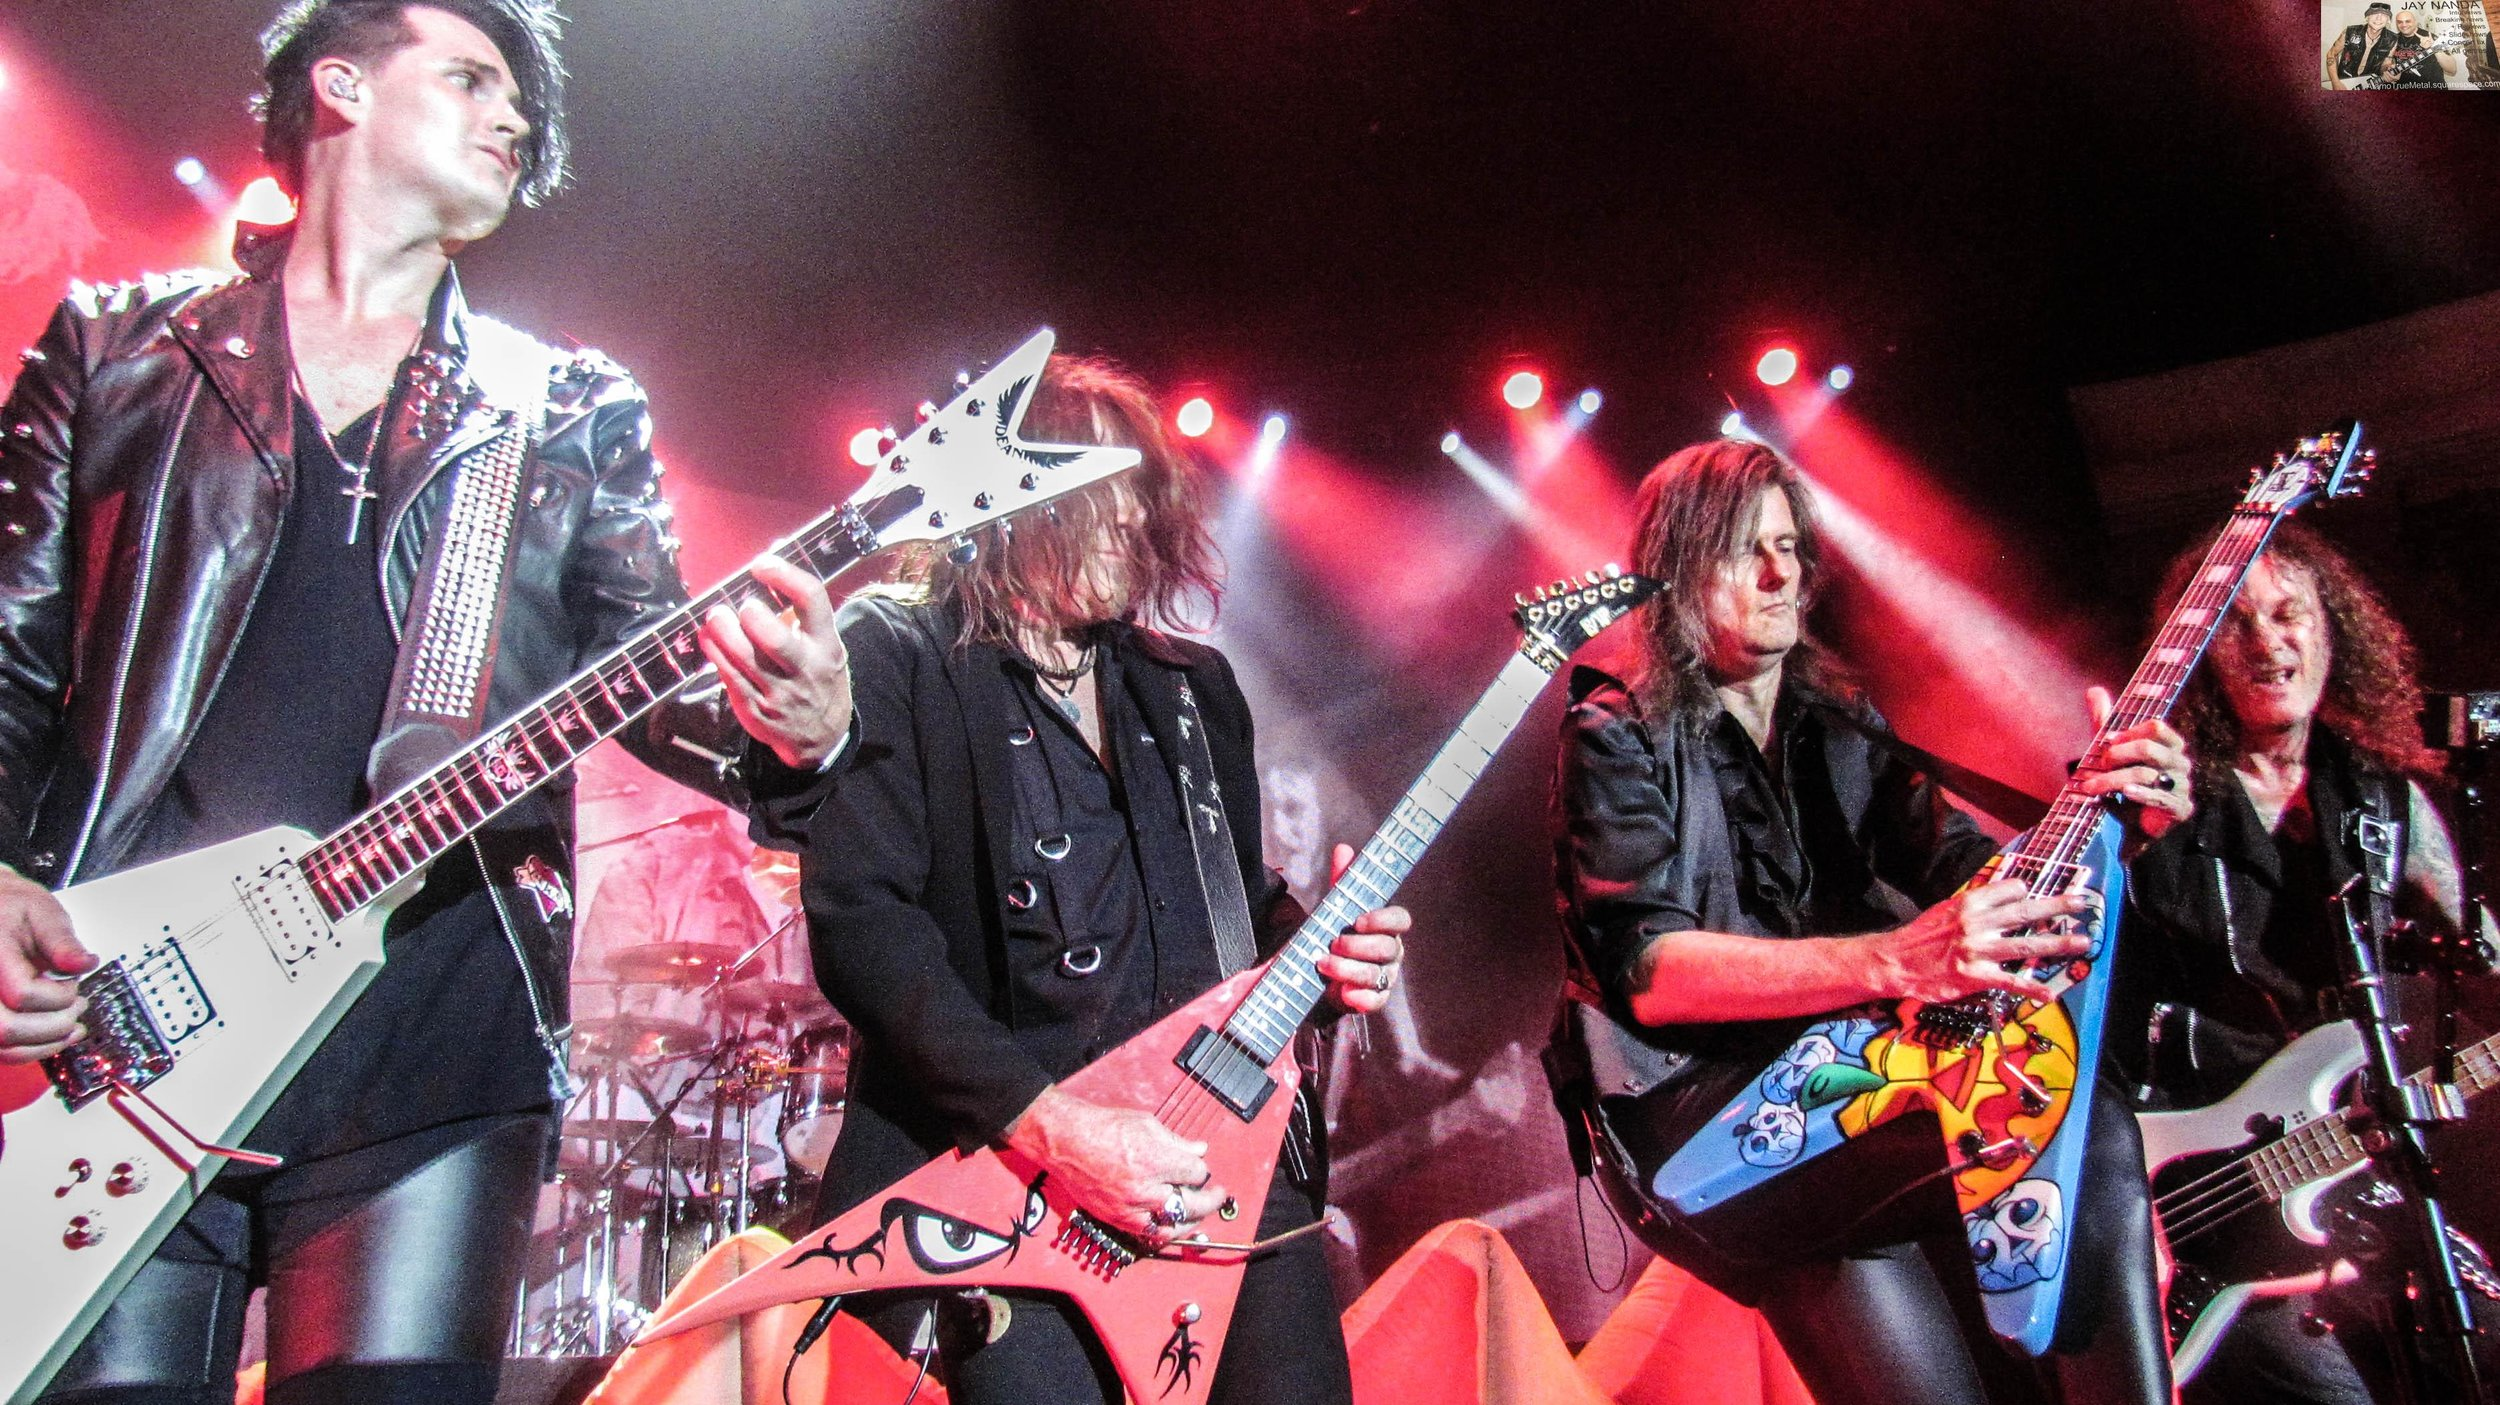 """Helloween's """"Pumpkins United"""" tour stopped at the Hollywood Palladium in Los Angeles last Saturday night, with guitarists (from left) Sascha Gerstner, Kai Hansen, Michael Weikath and bassist Markus Grosskopf coming together on opening track """"Halloween."""""""